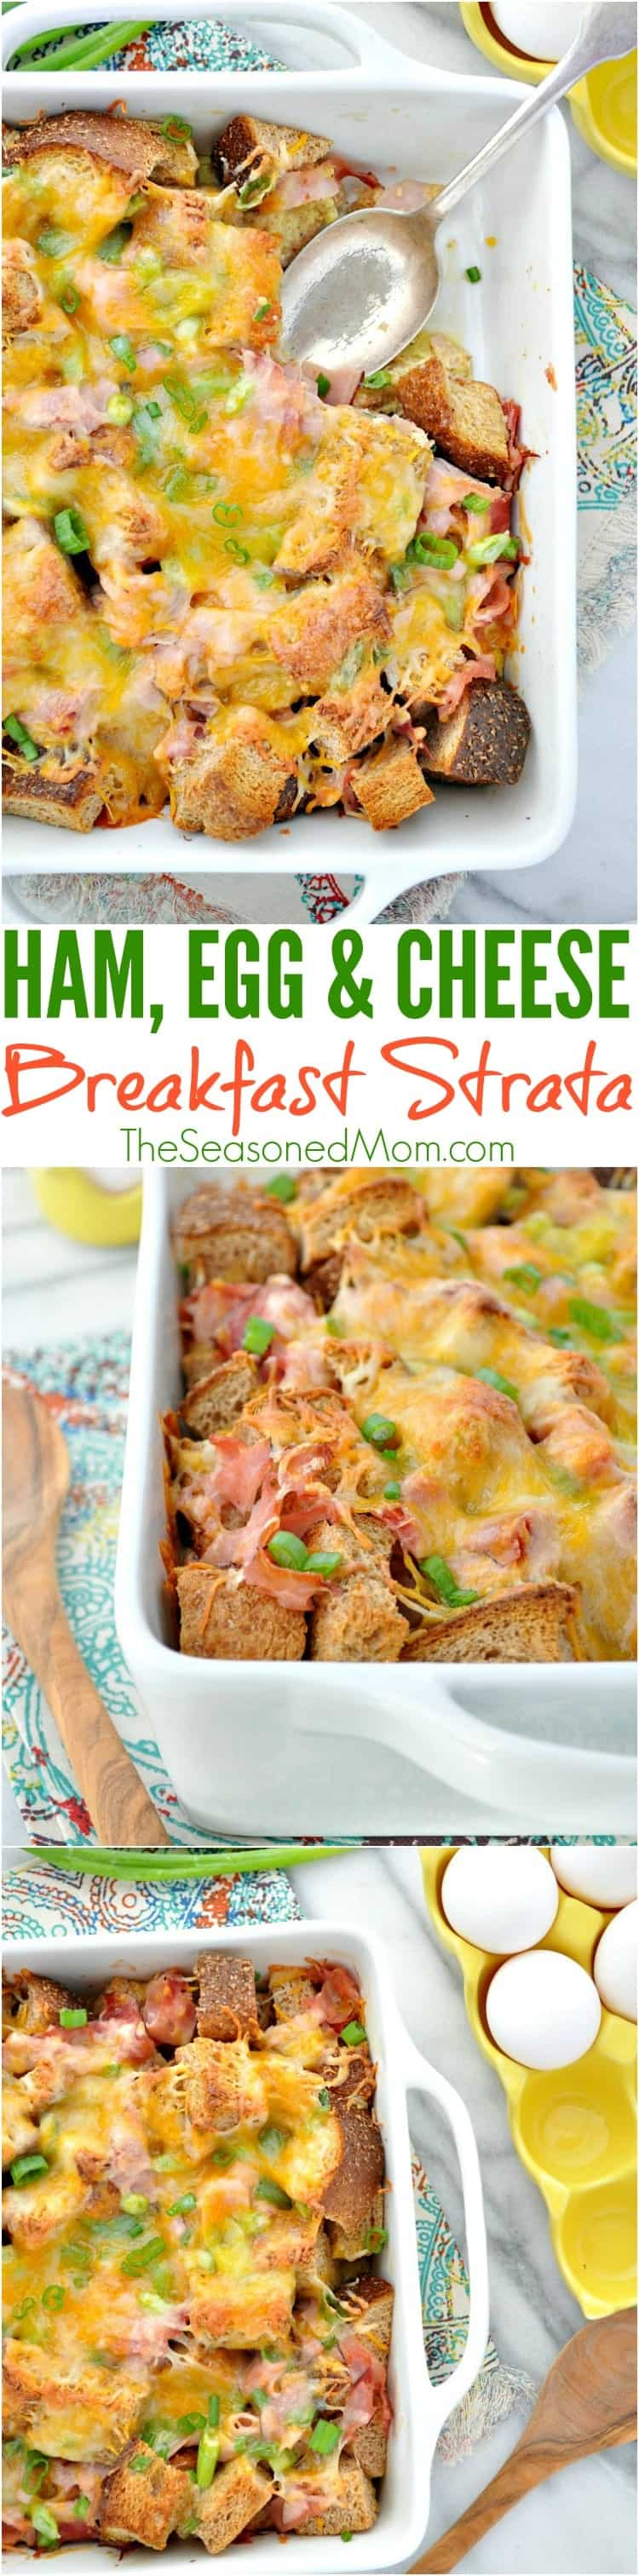 Ham Egg Cheese Breakfast Strata is an easy make-ahead brunch dish that's perfect for the holidays! Add this overnight breakfast casserole to your menu -- you will not be disappointed!